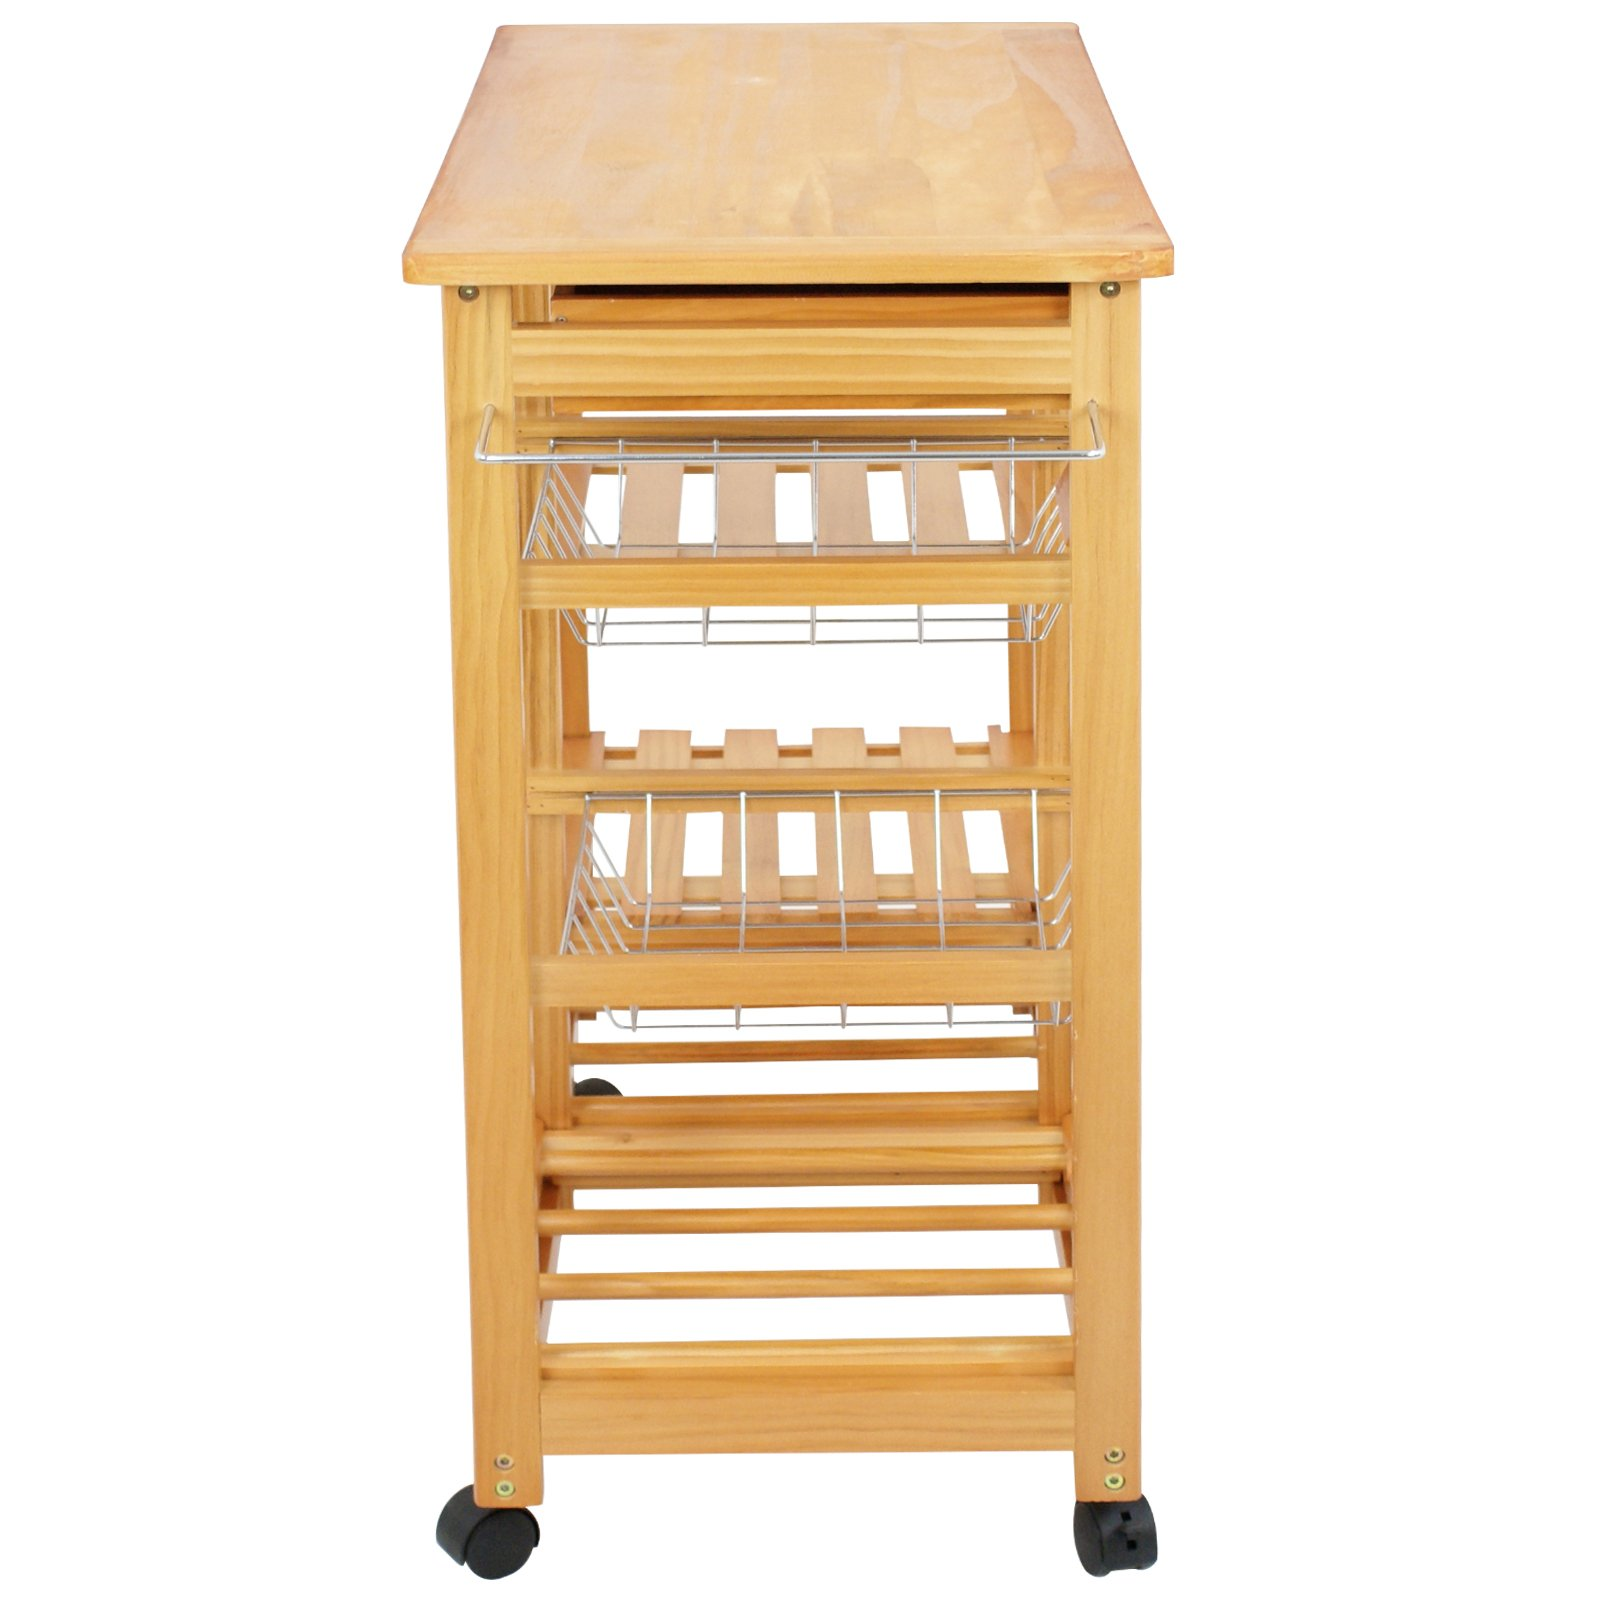 SUPER DEAL Multi-Purpose Wood Rolling Kitchen Island Trolley w/Drawer Shelves Basket by SUPER DEAL (Image #7)